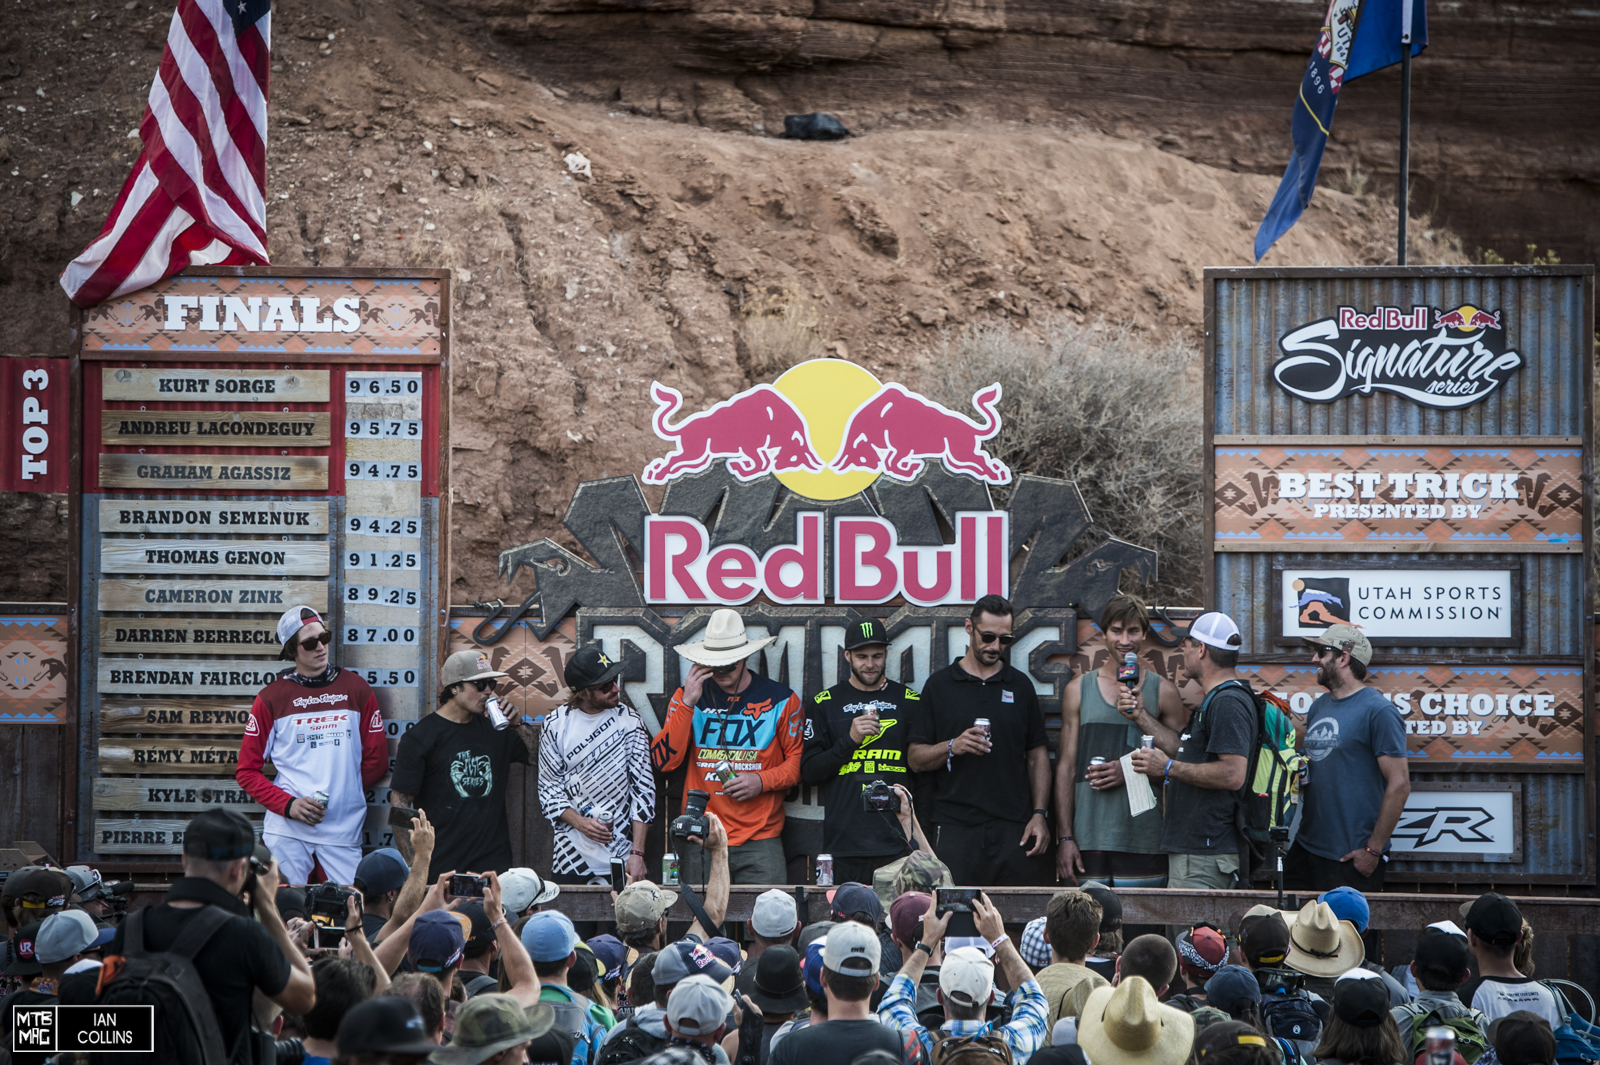 Every Rampage winner EVER. So cool to see everyone on stage.